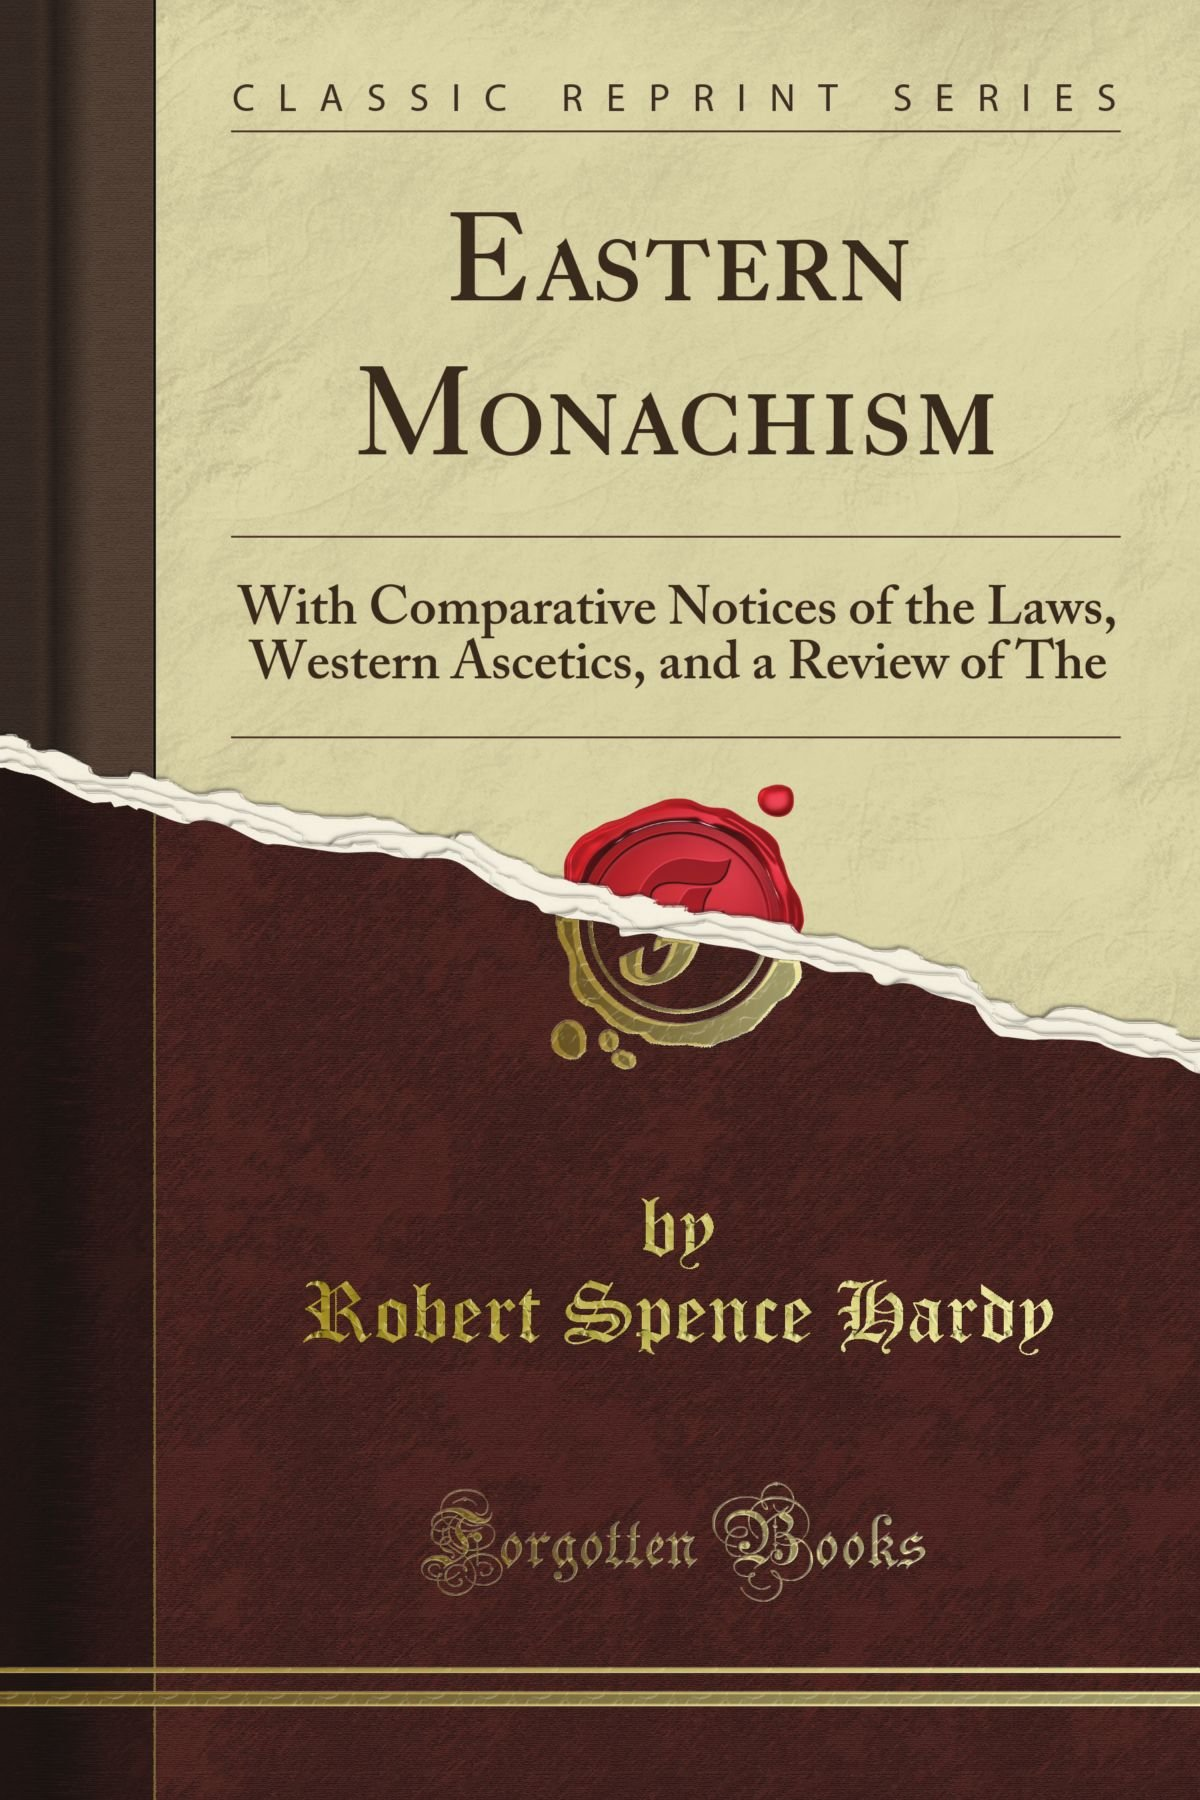 Read Online Eastern Monachism: With Comparative Notices of the Laws, Western Ascetics, and a Review of The (Classic Reprint) ebook